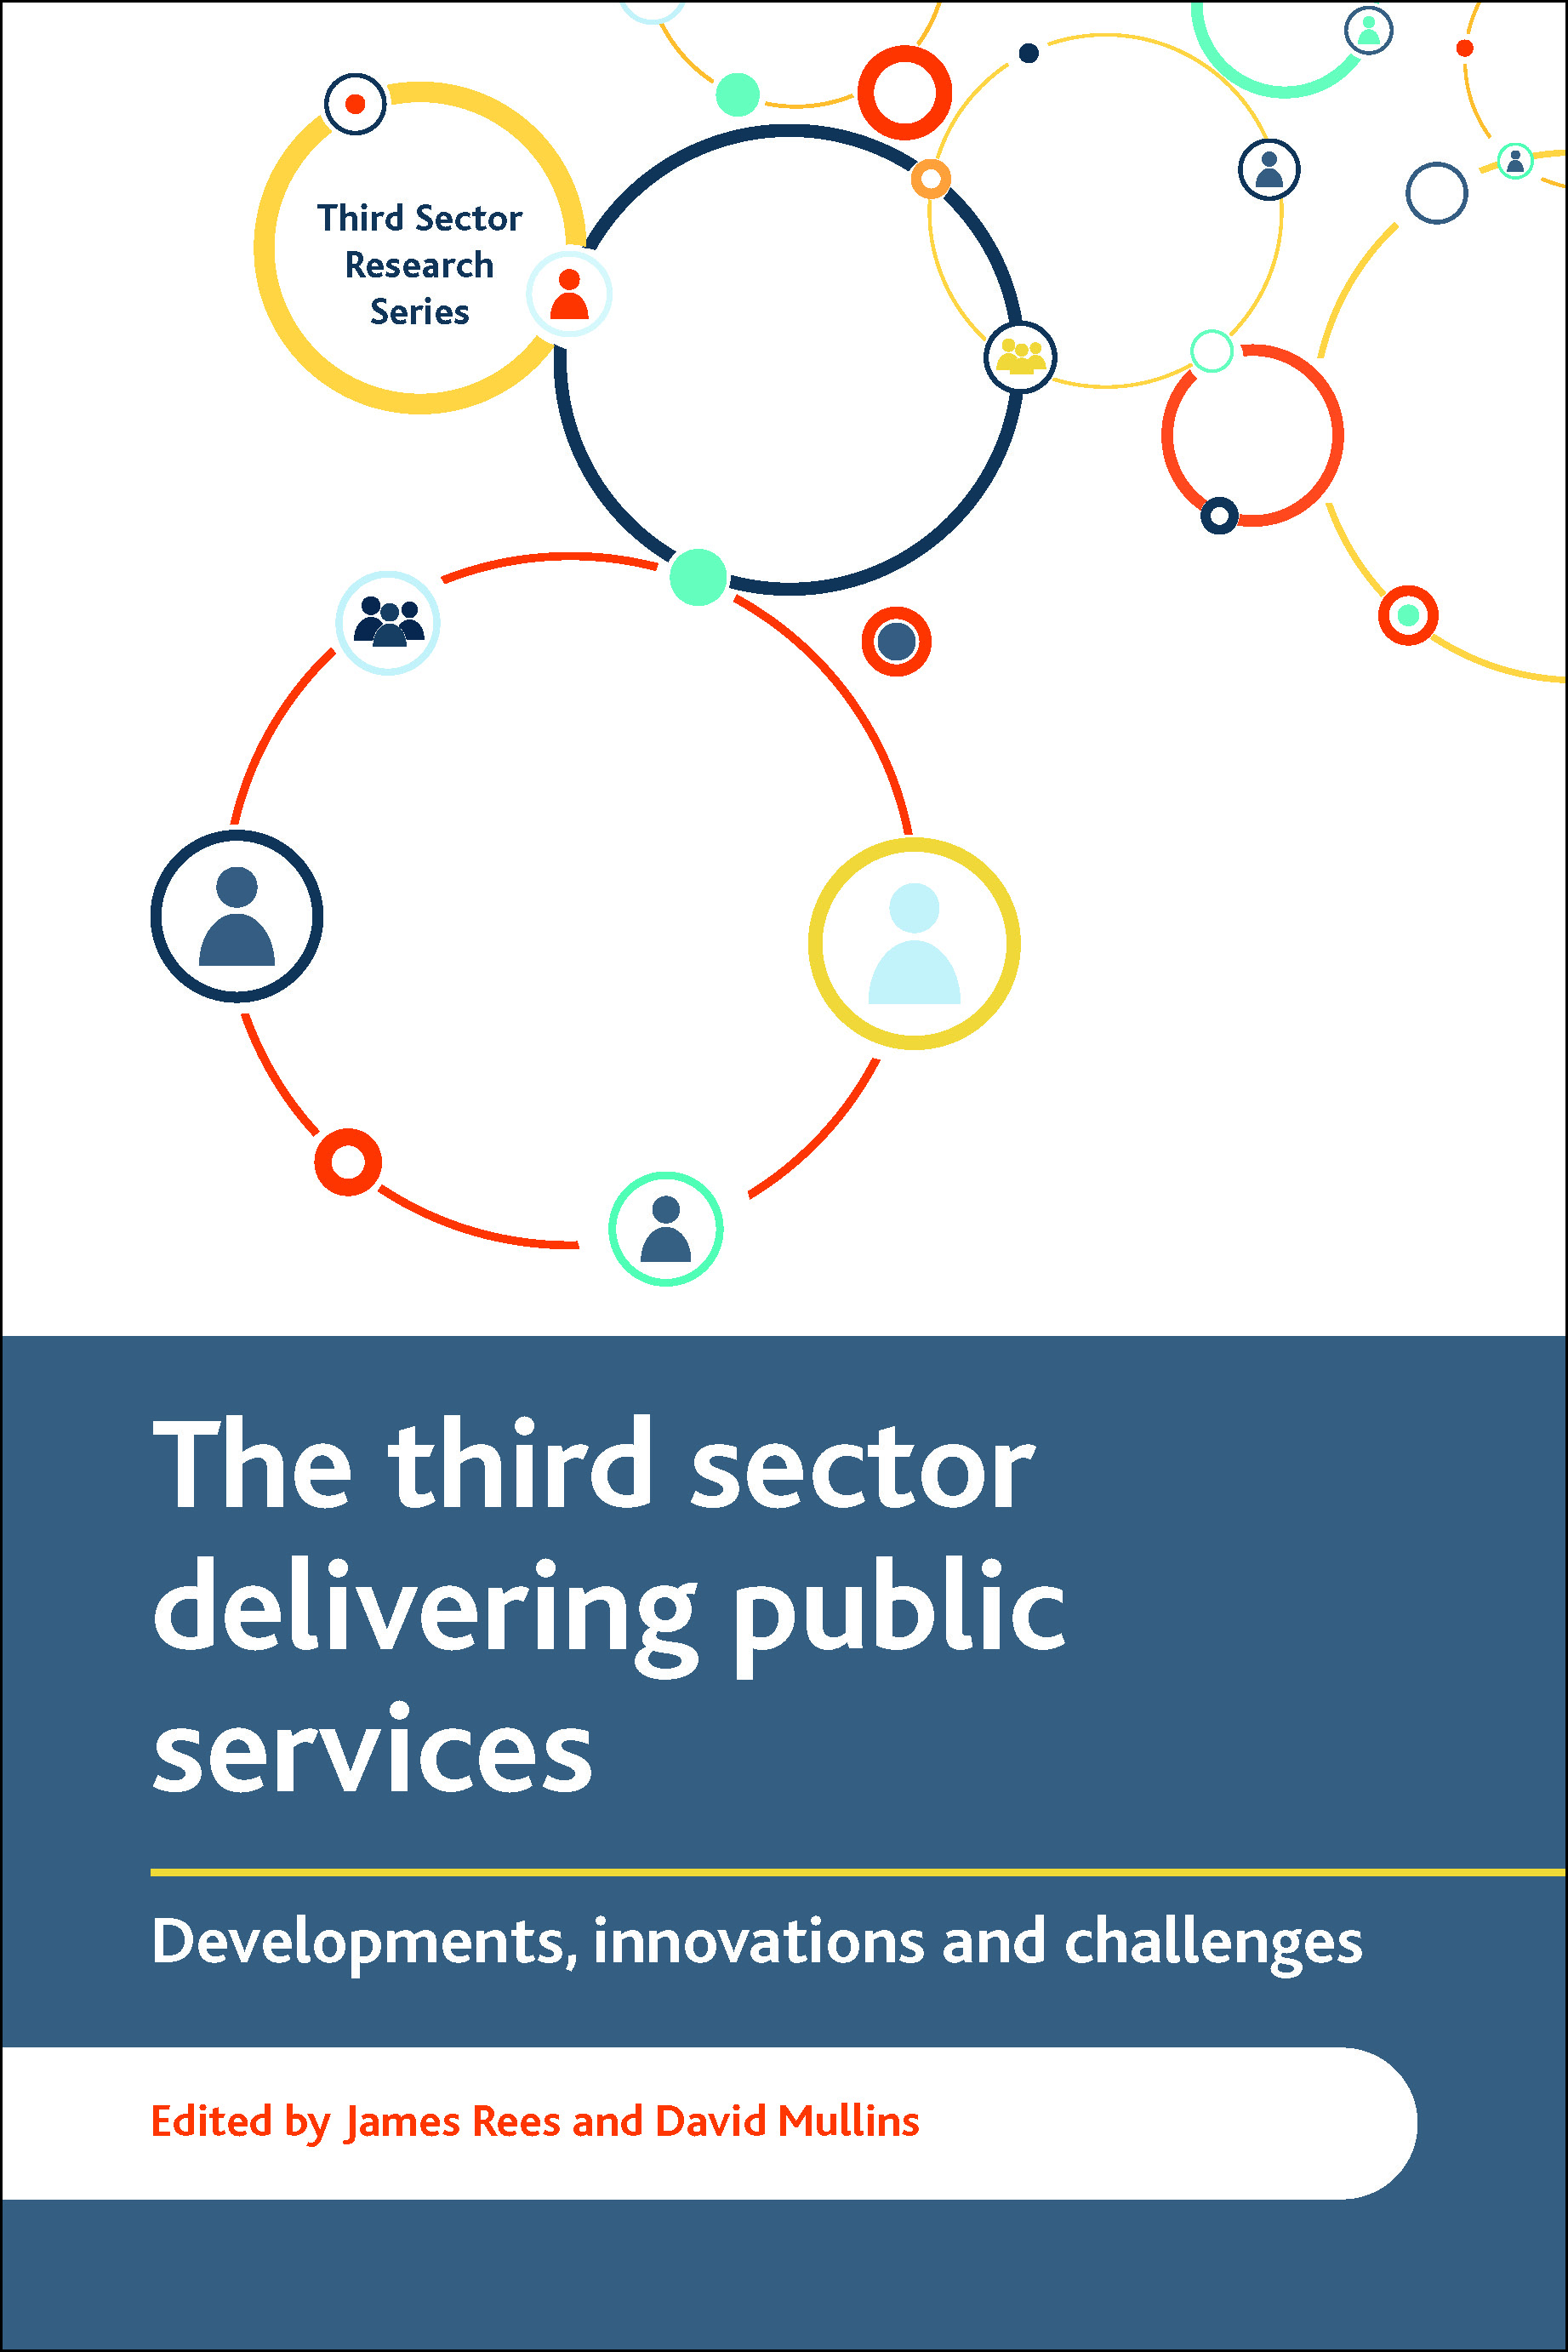 5 reasons the future for the third sector in public services doesn't look bright